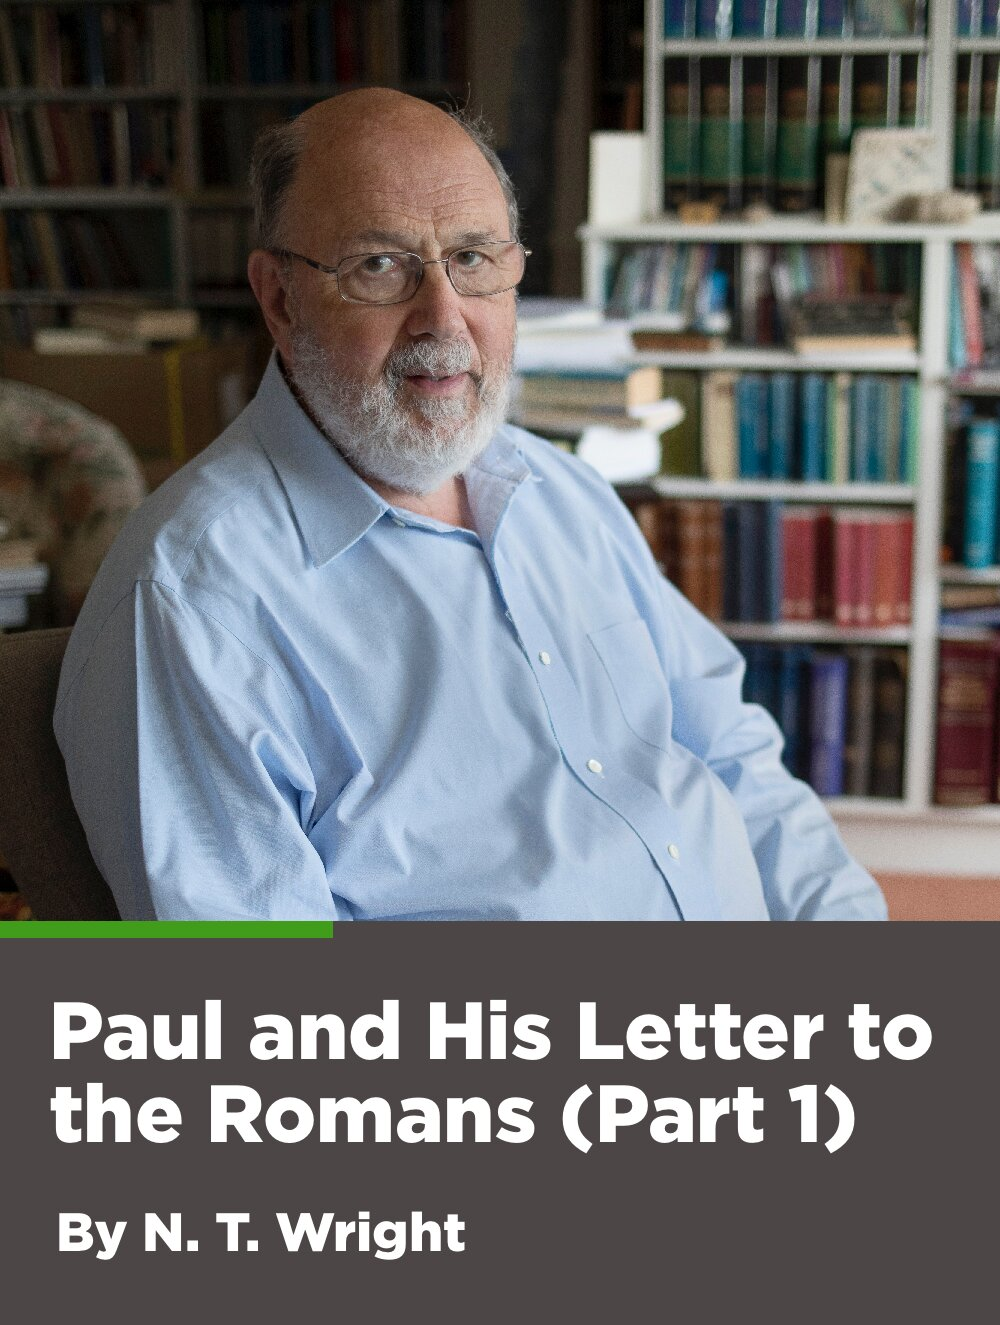 Paul and His Letter to the Romans Part 1